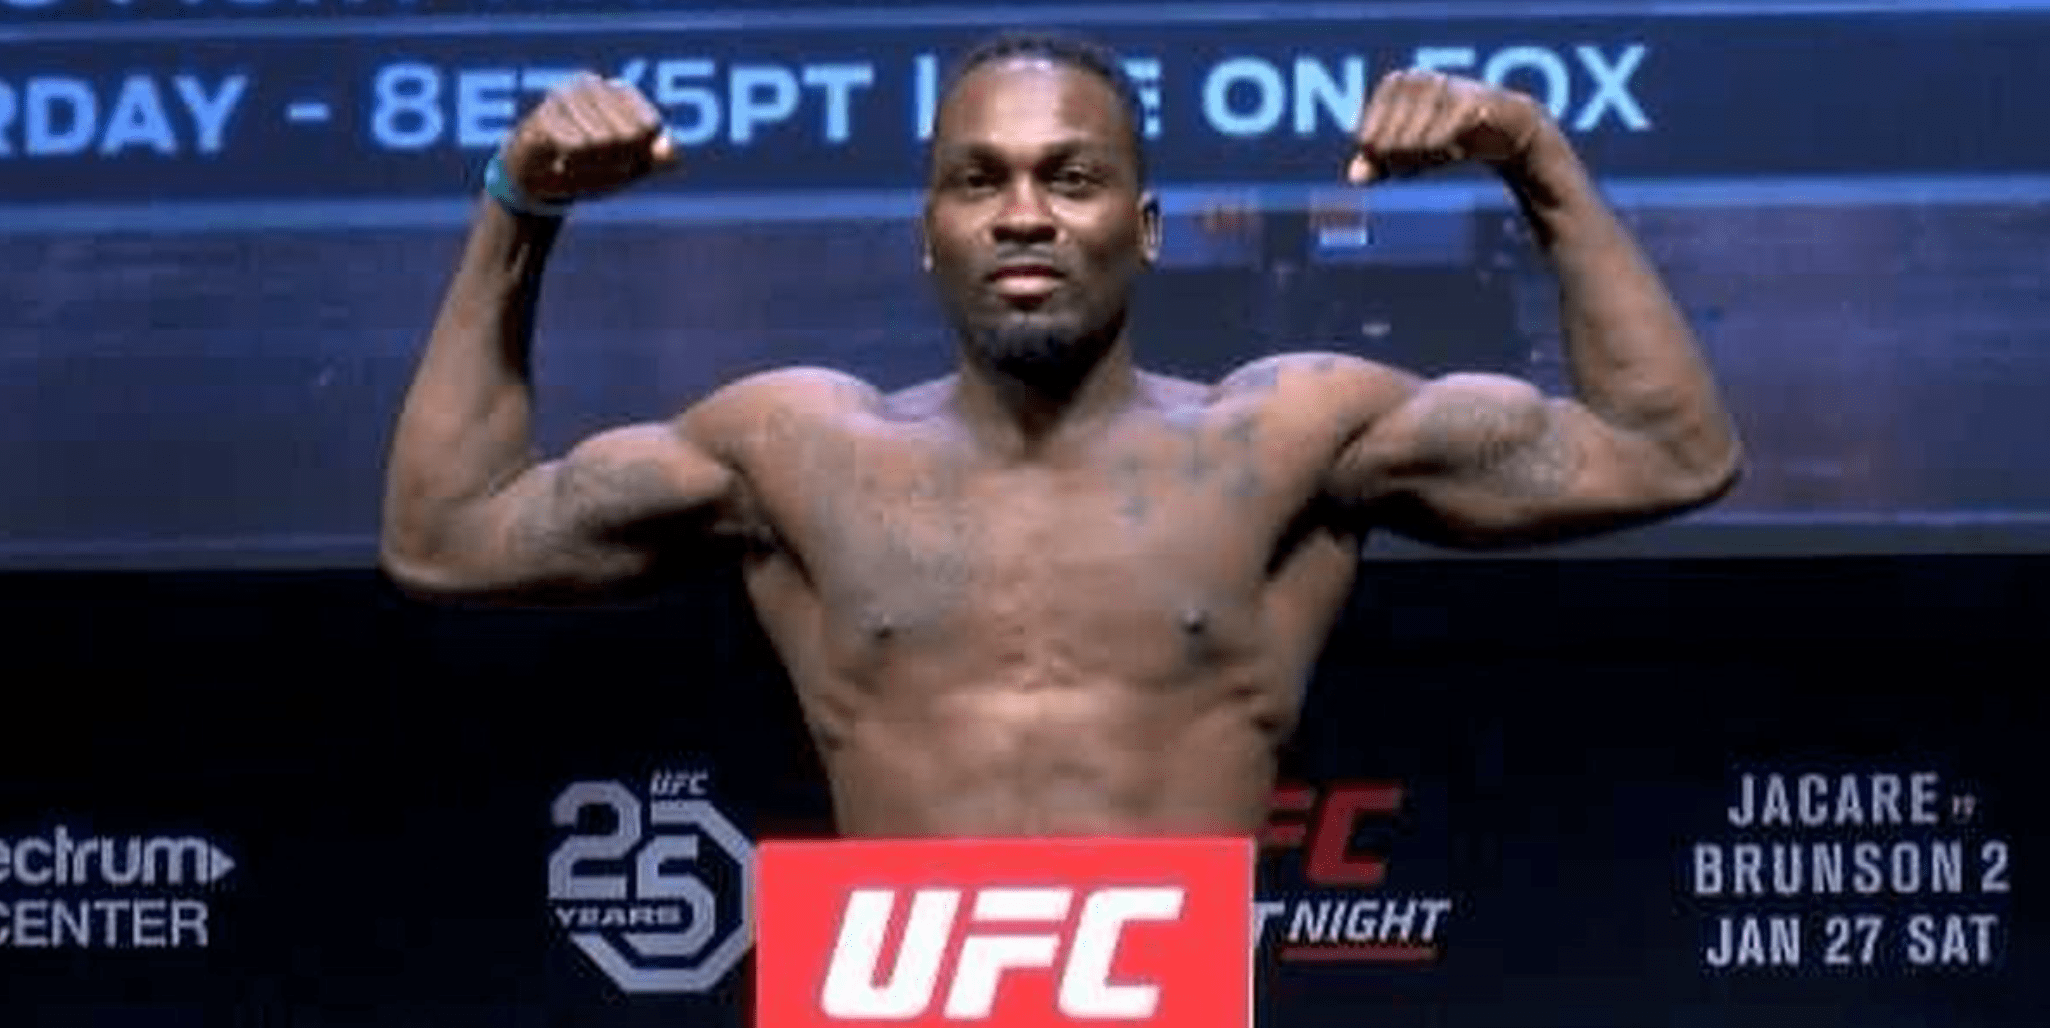 Brunson Opens Up On Being Disrespected And Potential Next Opponents